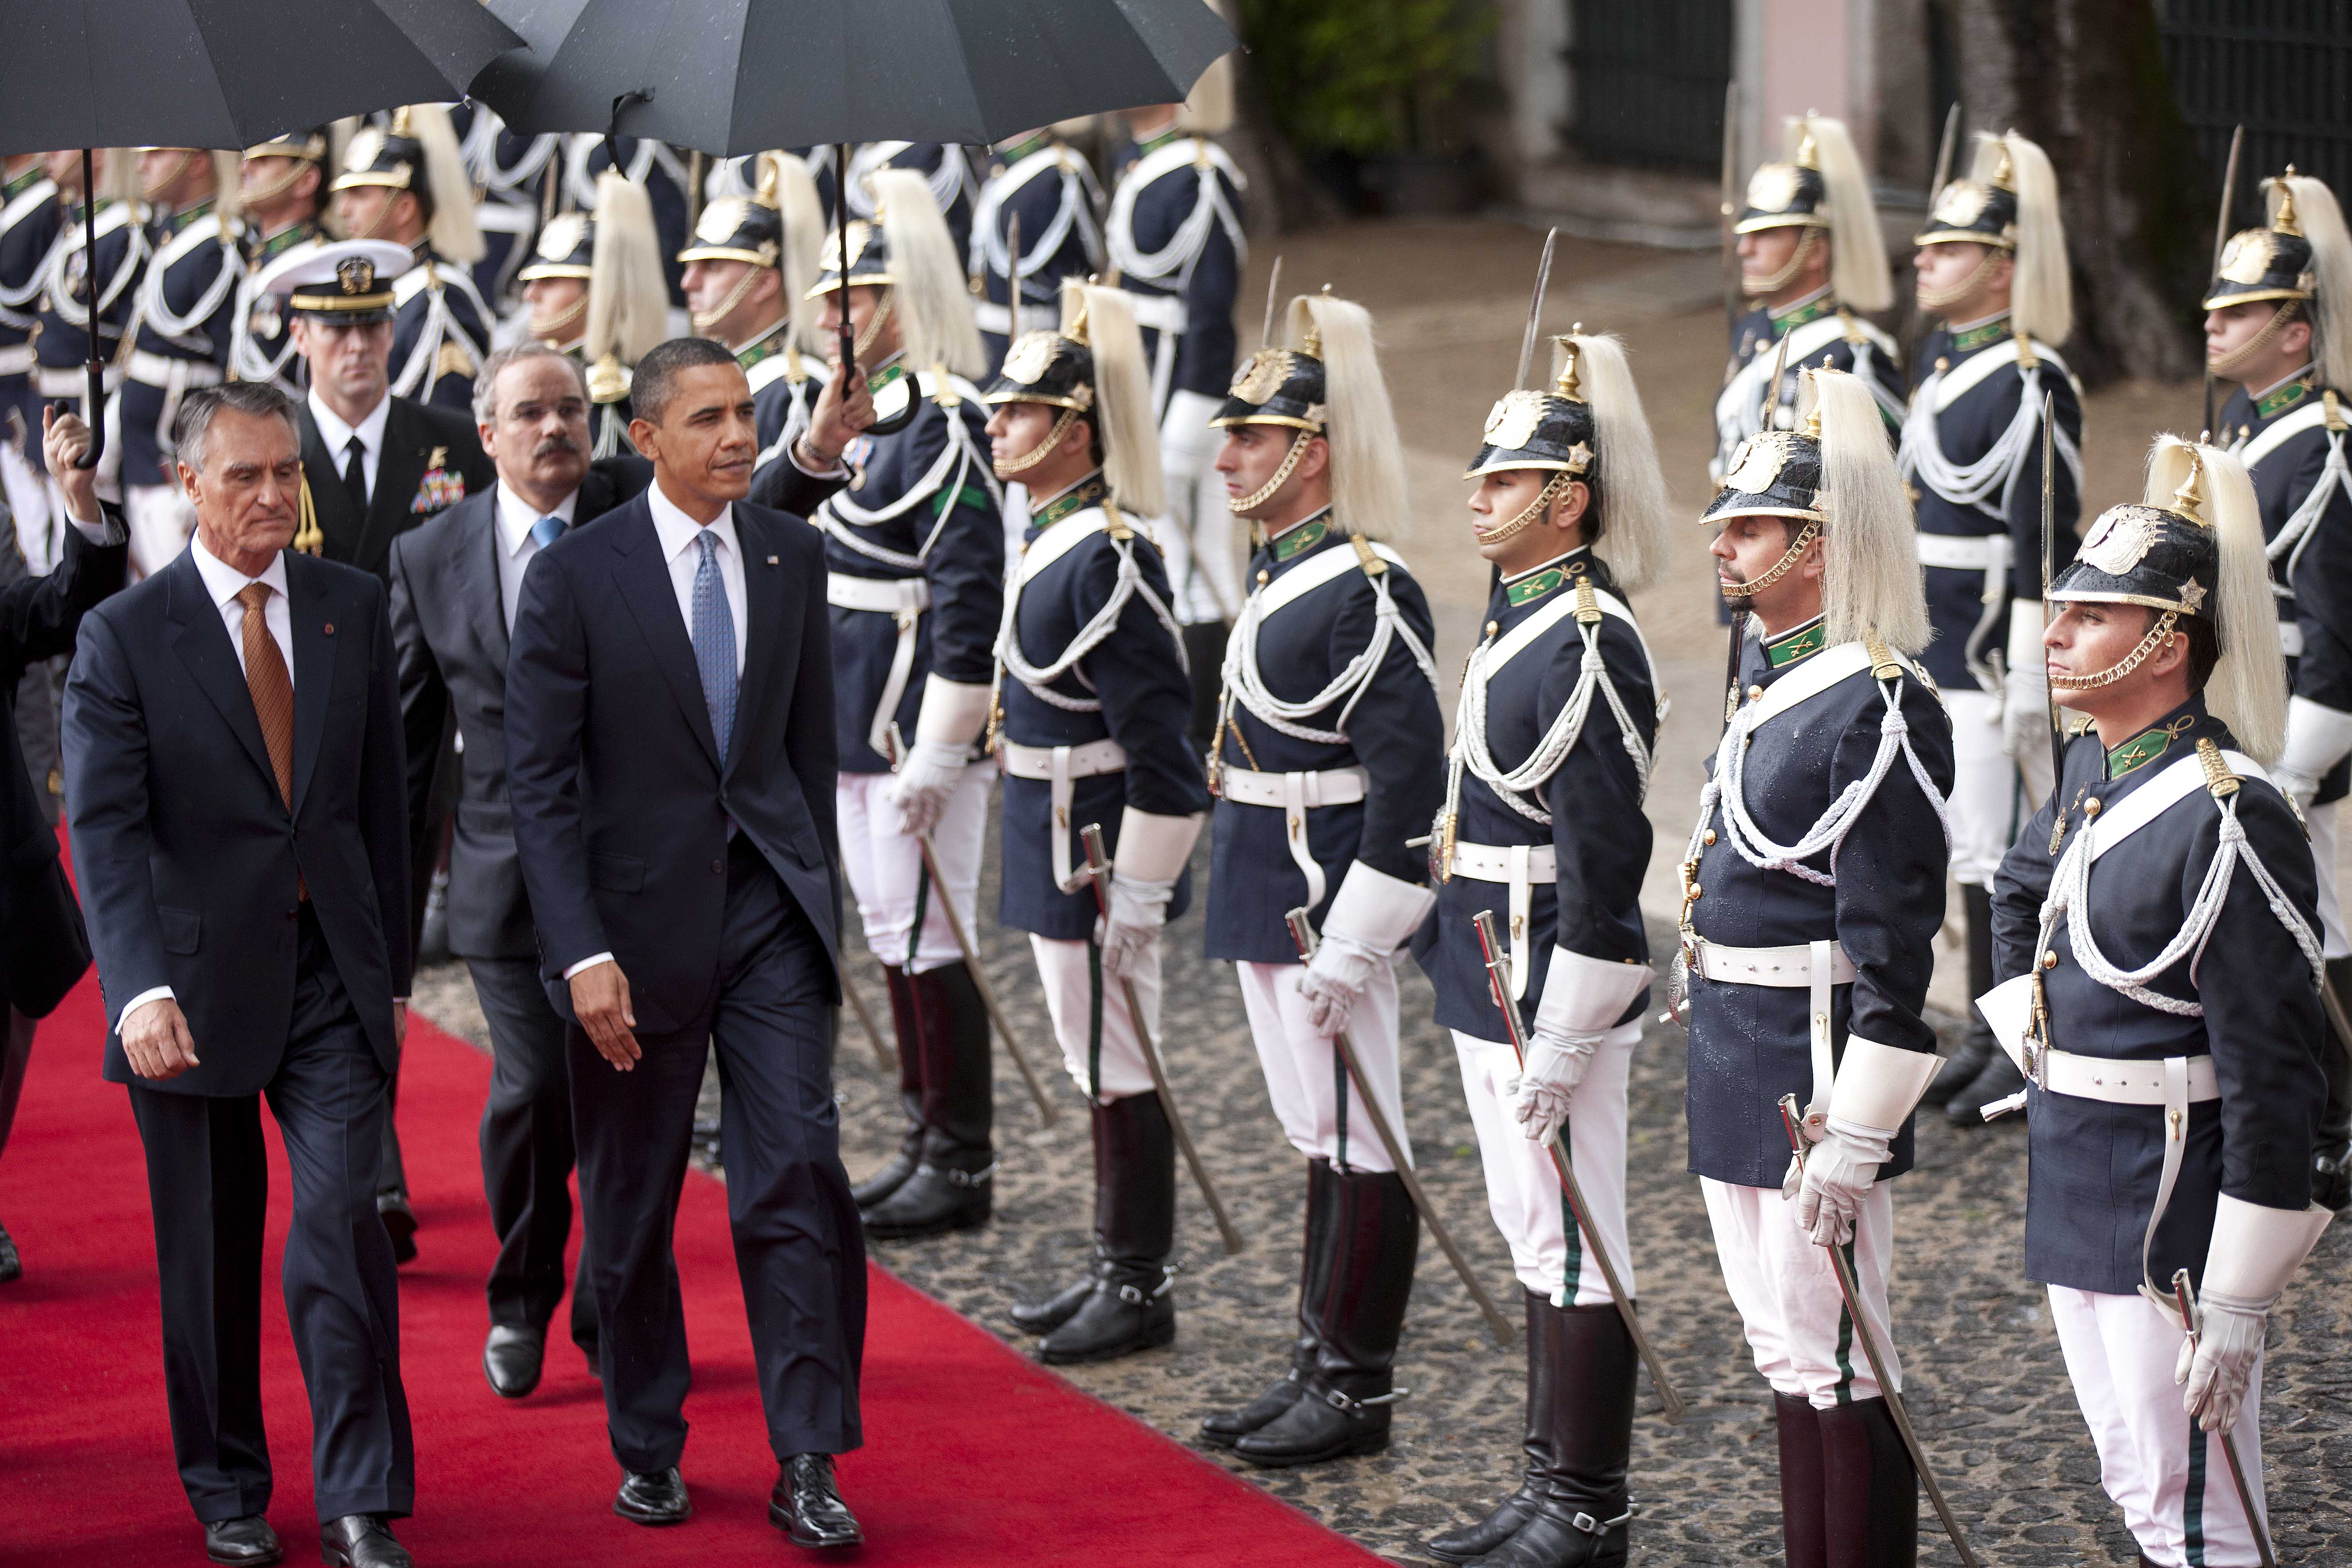 The President Attends an Arrival Ceremony in Lisbon